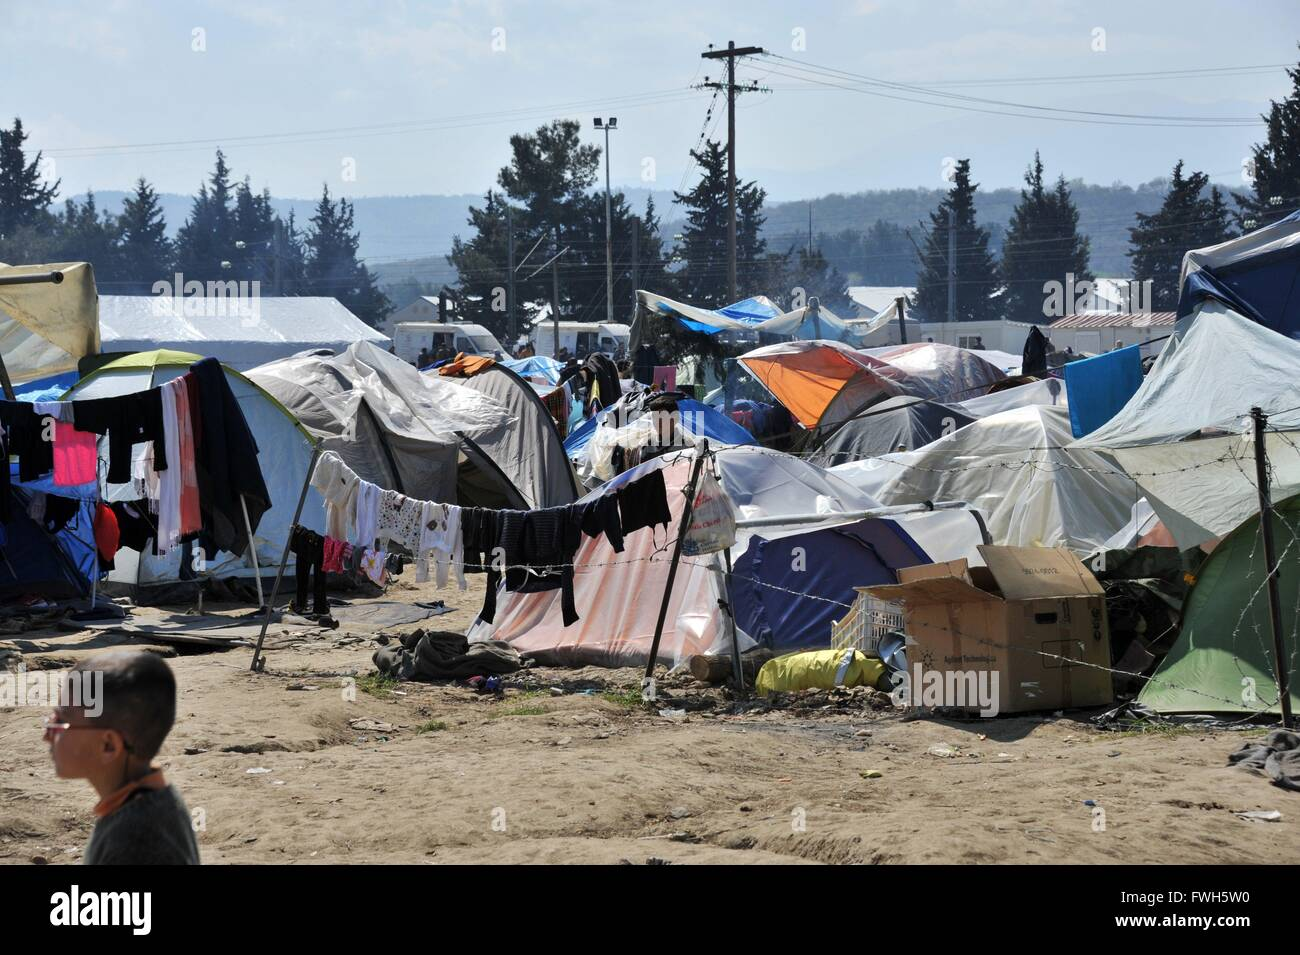 Shoulder to shoulder hundreds tents. On a barbed wire fence laundry is dried - 29 March 2016 - Stock Image